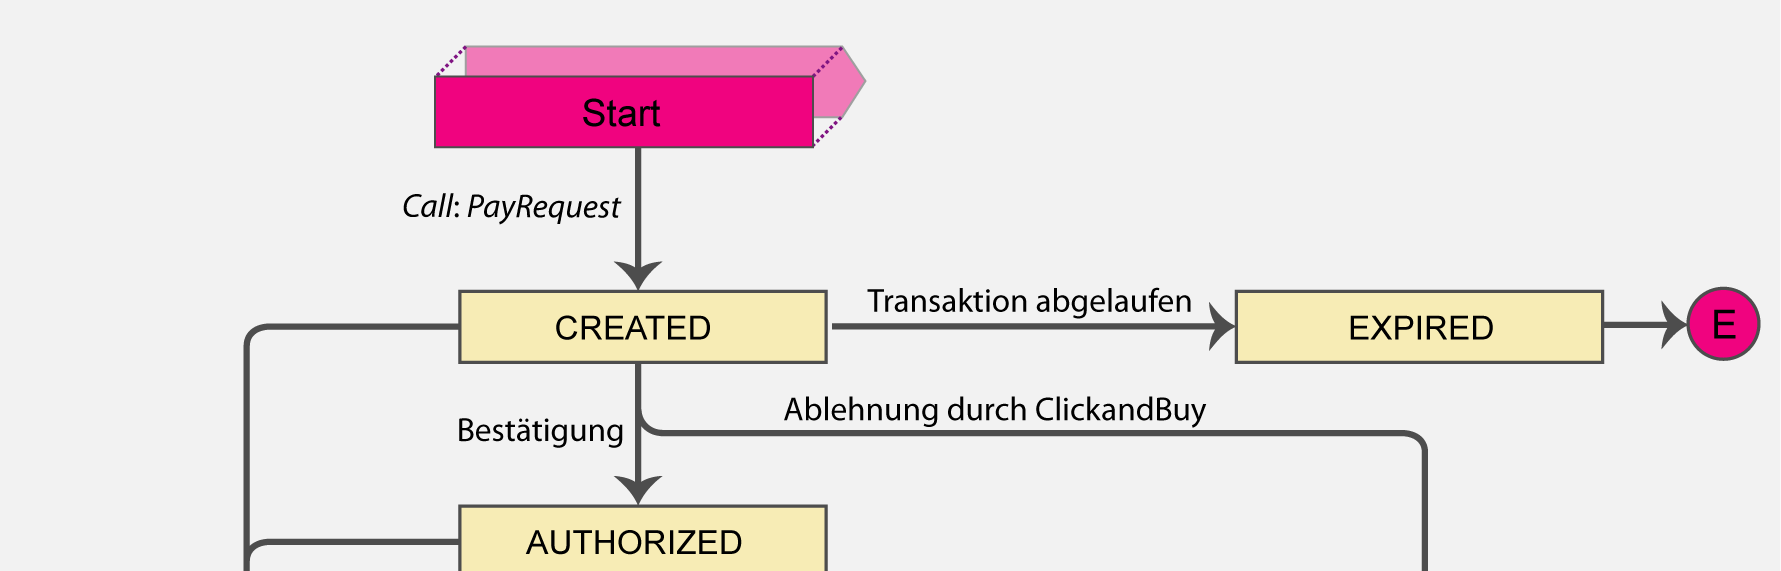 11.6 RecurringPaymentAuthorization Statusablaufdiagramm für die Transaktion RecurringPaymentAuthorization: Definition der Status für die Transaktion RecurringPaymentAuthorization: Status Final